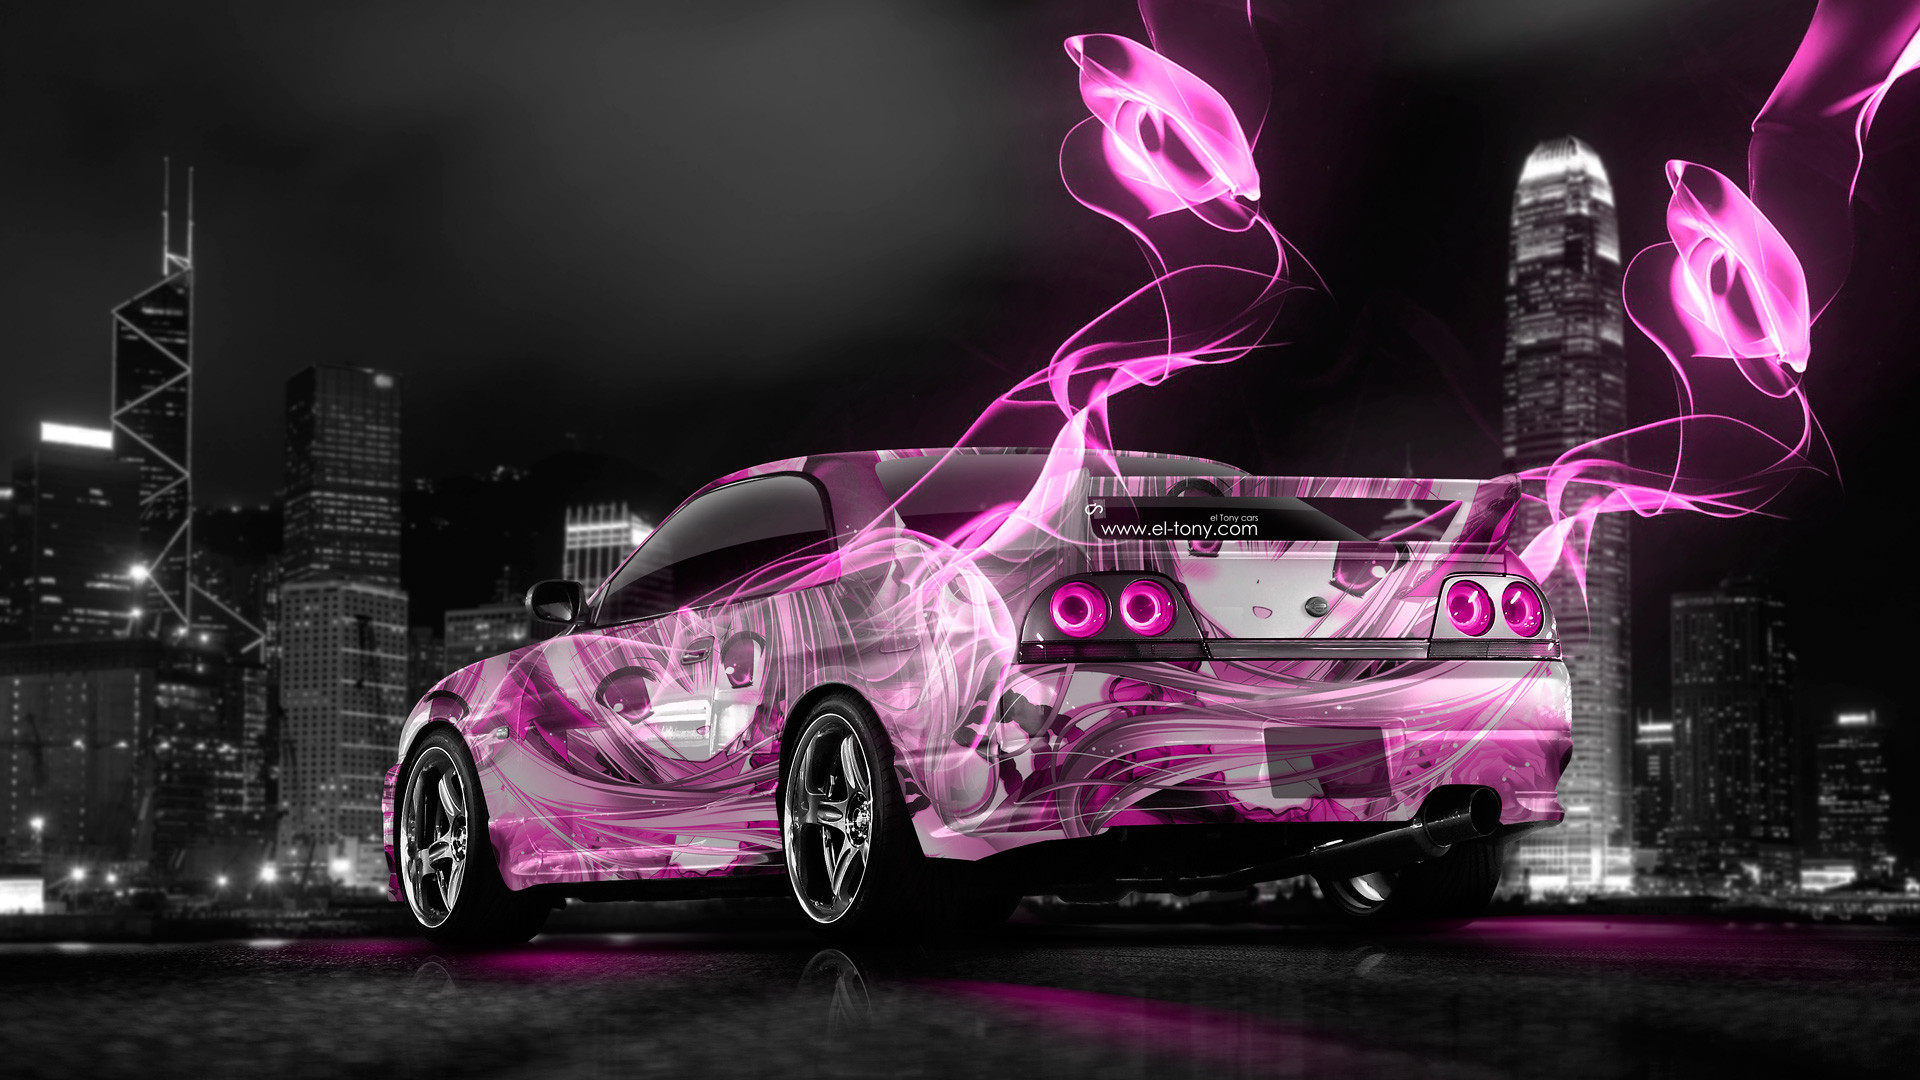 R33 Gtr Wallpapers 66 Background Pictures Pink Nissan Skyline R34 See More